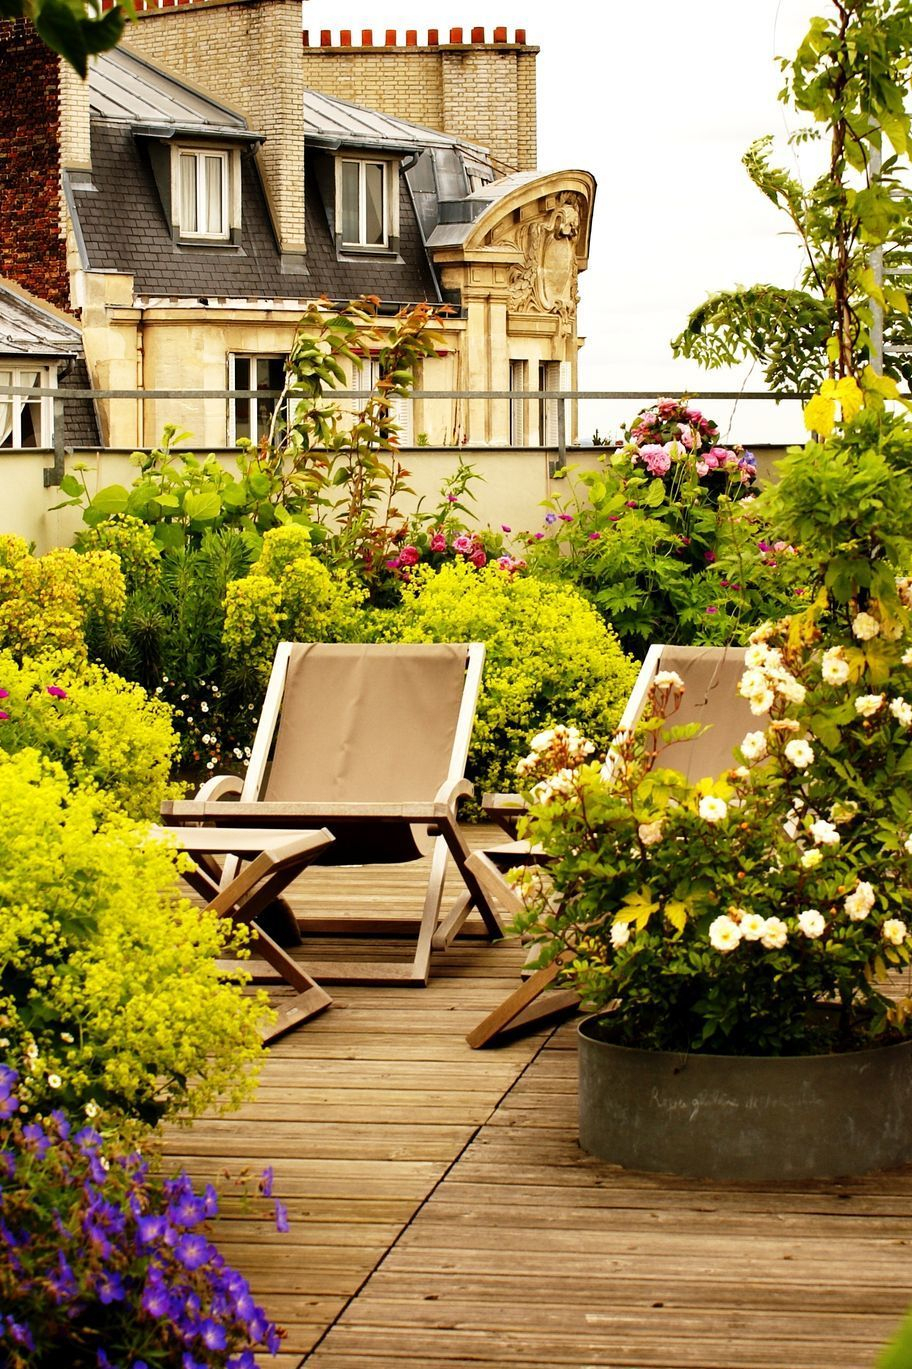 Aménager Une Grande Terrasse : 10 Solutions Possibles ... tout Amenager Une Grande Terrasse